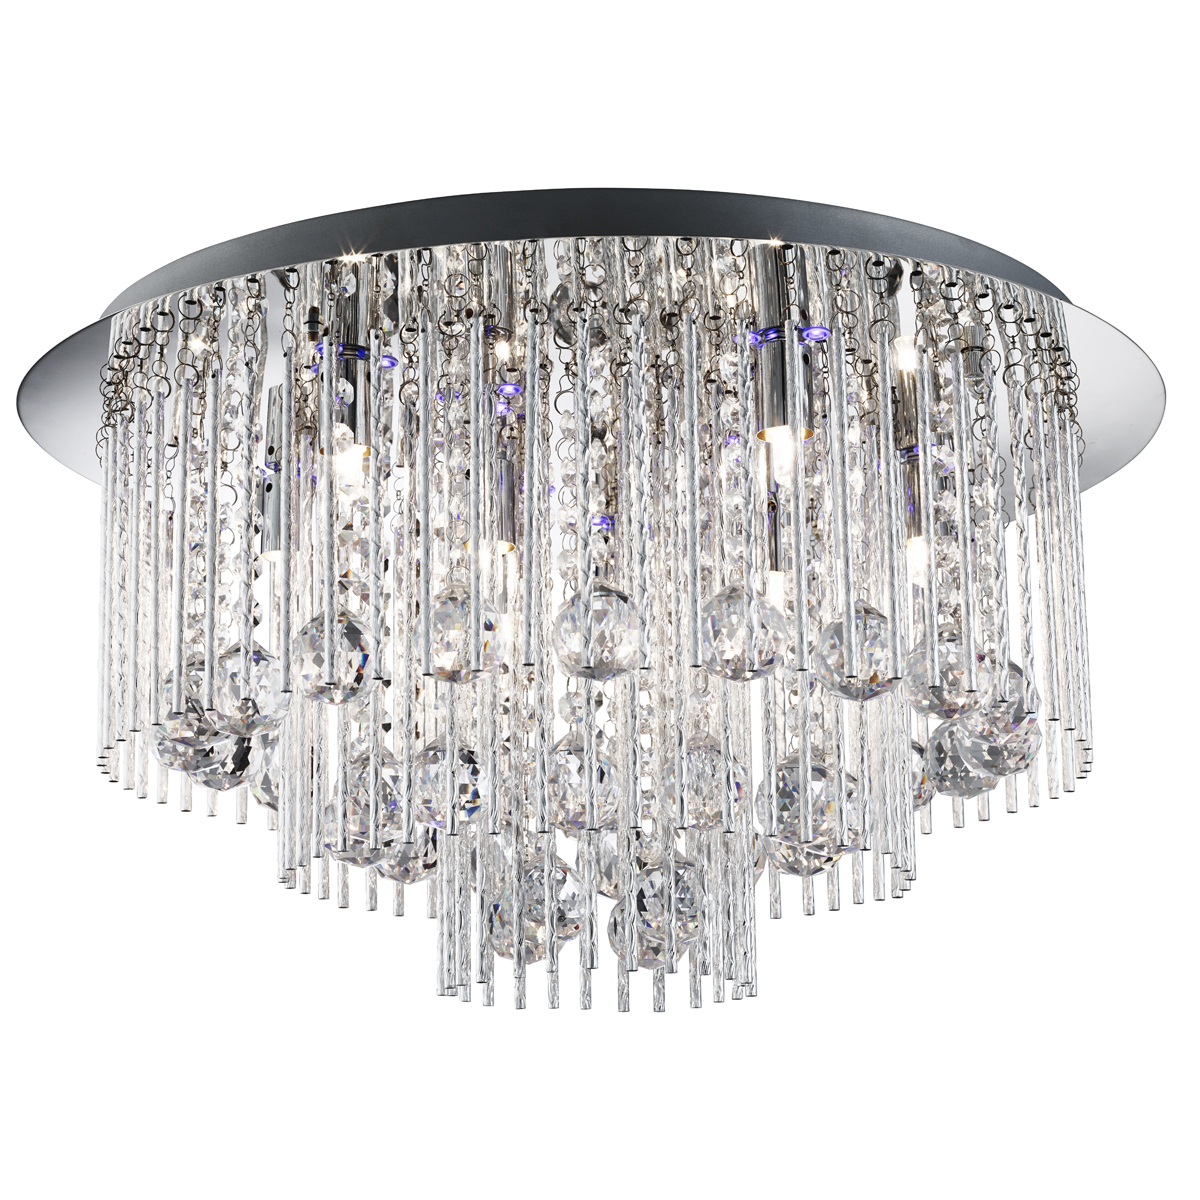 Home – Astral Lighting Ltd In Hatfield 3 Light Novelty Chandeliers (View 22 of 30)